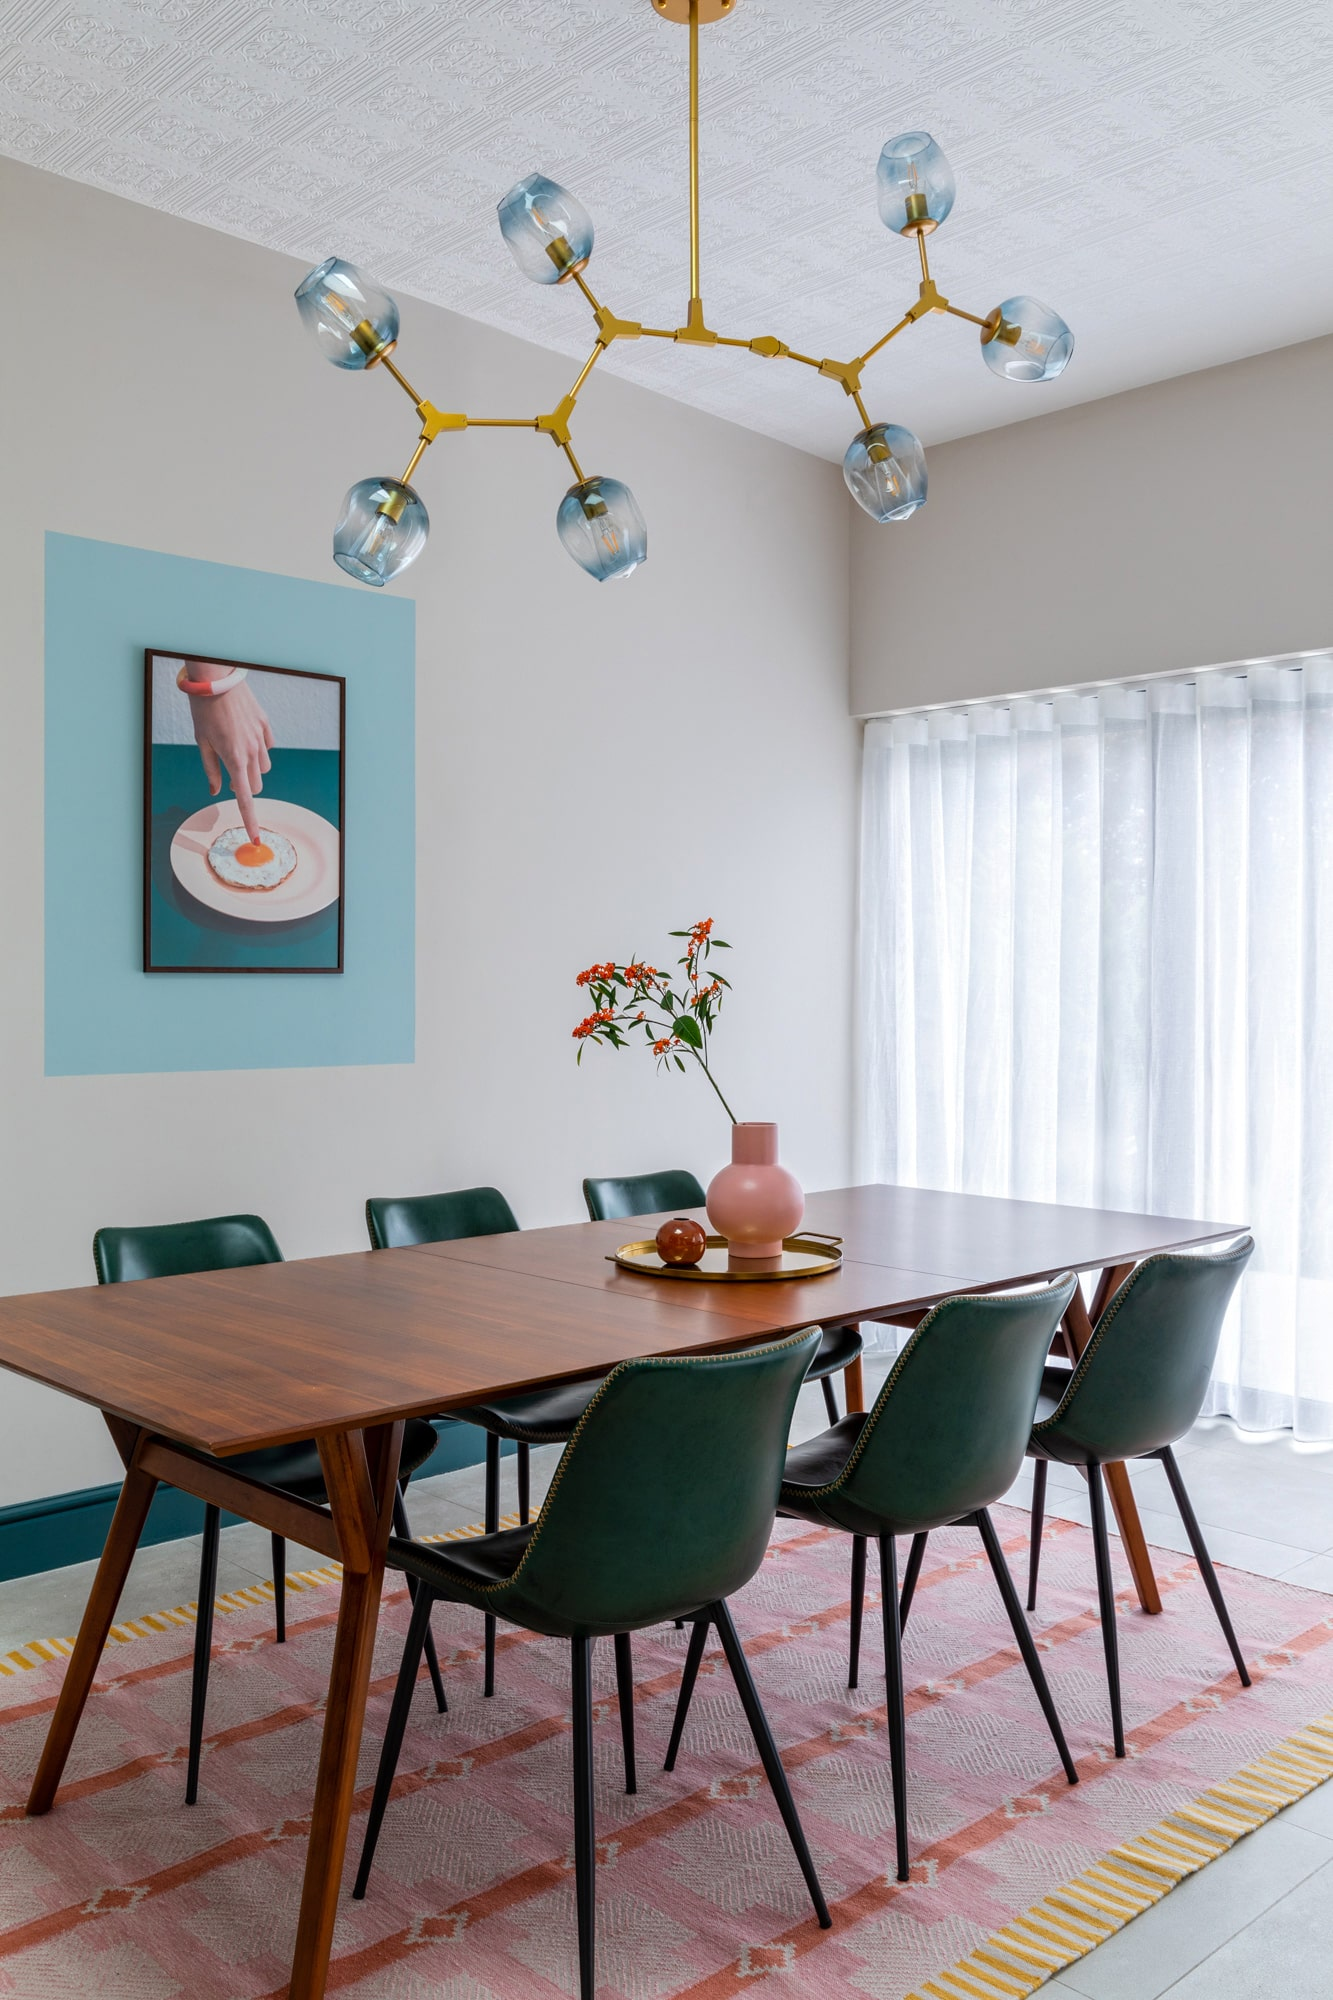 Interior photograph: a wooden dinning table, three green chairs, a round tray with pink vase on the tray. A beautiful poster on the wall with a female hand pointing on a fried egg on a plate in a blue paint frame.